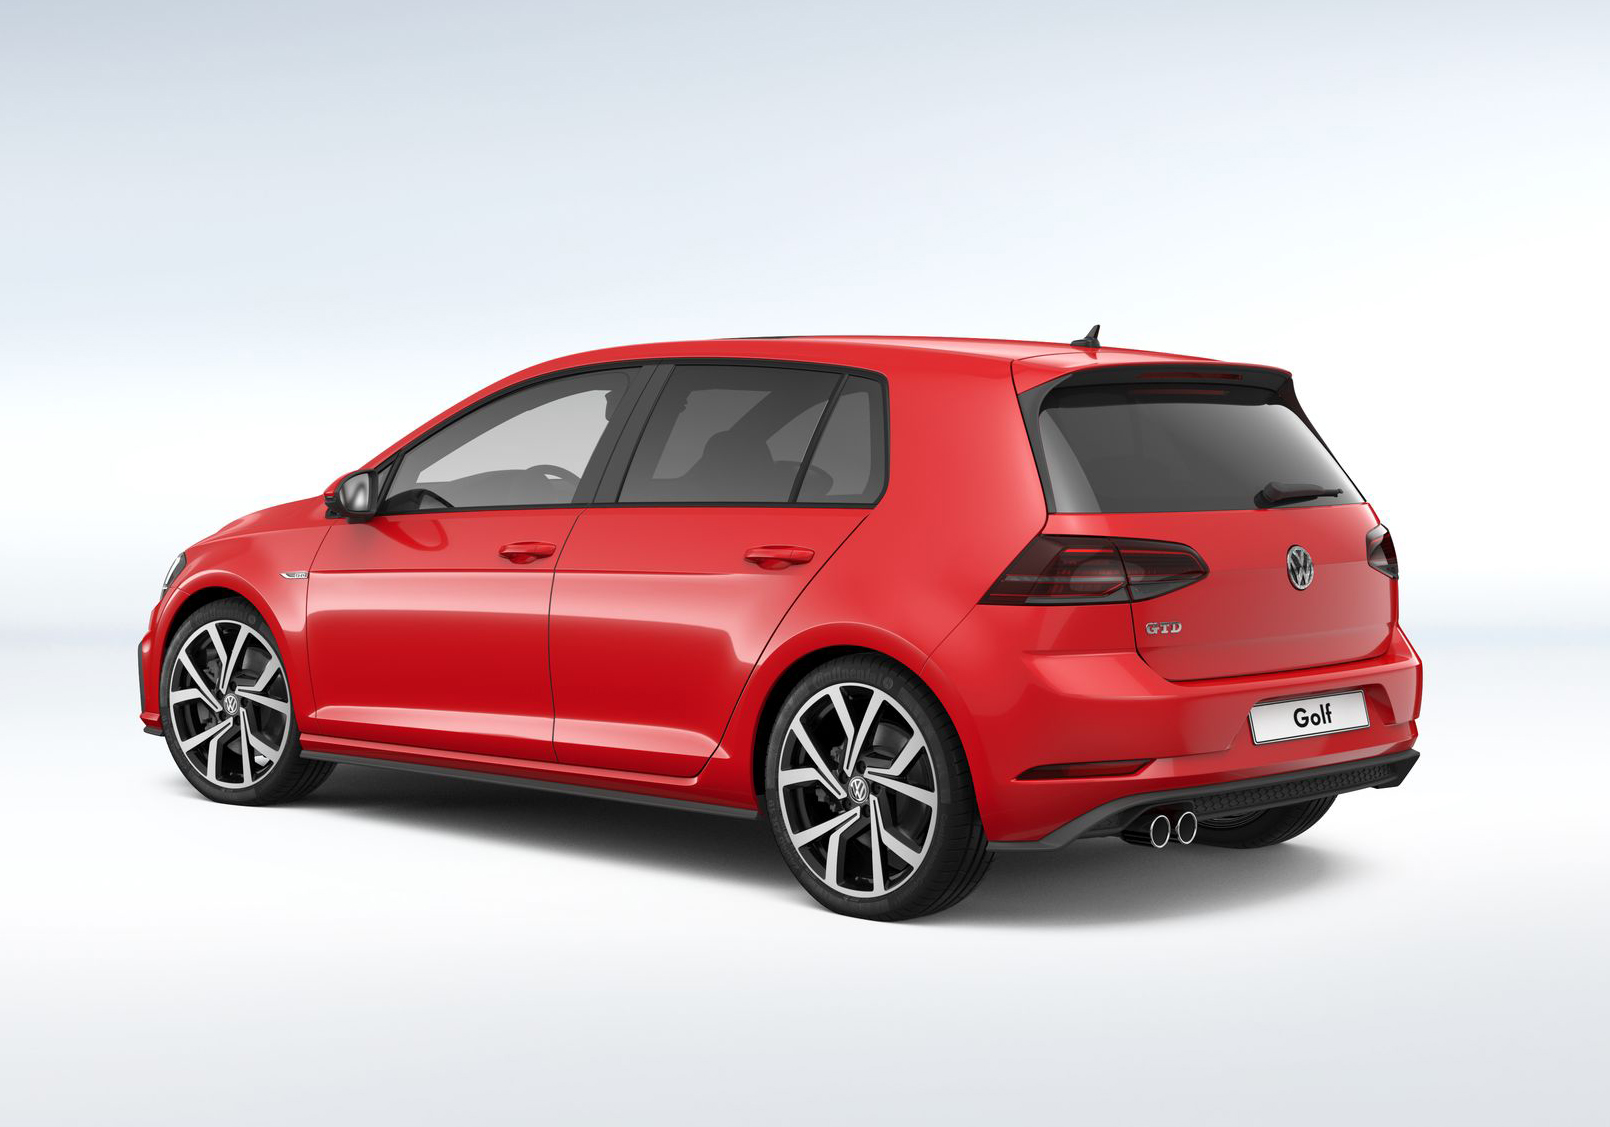 volkswagen golf 7 gtd 2 0 tdi eilander car lease gmbh. Black Bedroom Furniture Sets. Home Design Ideas